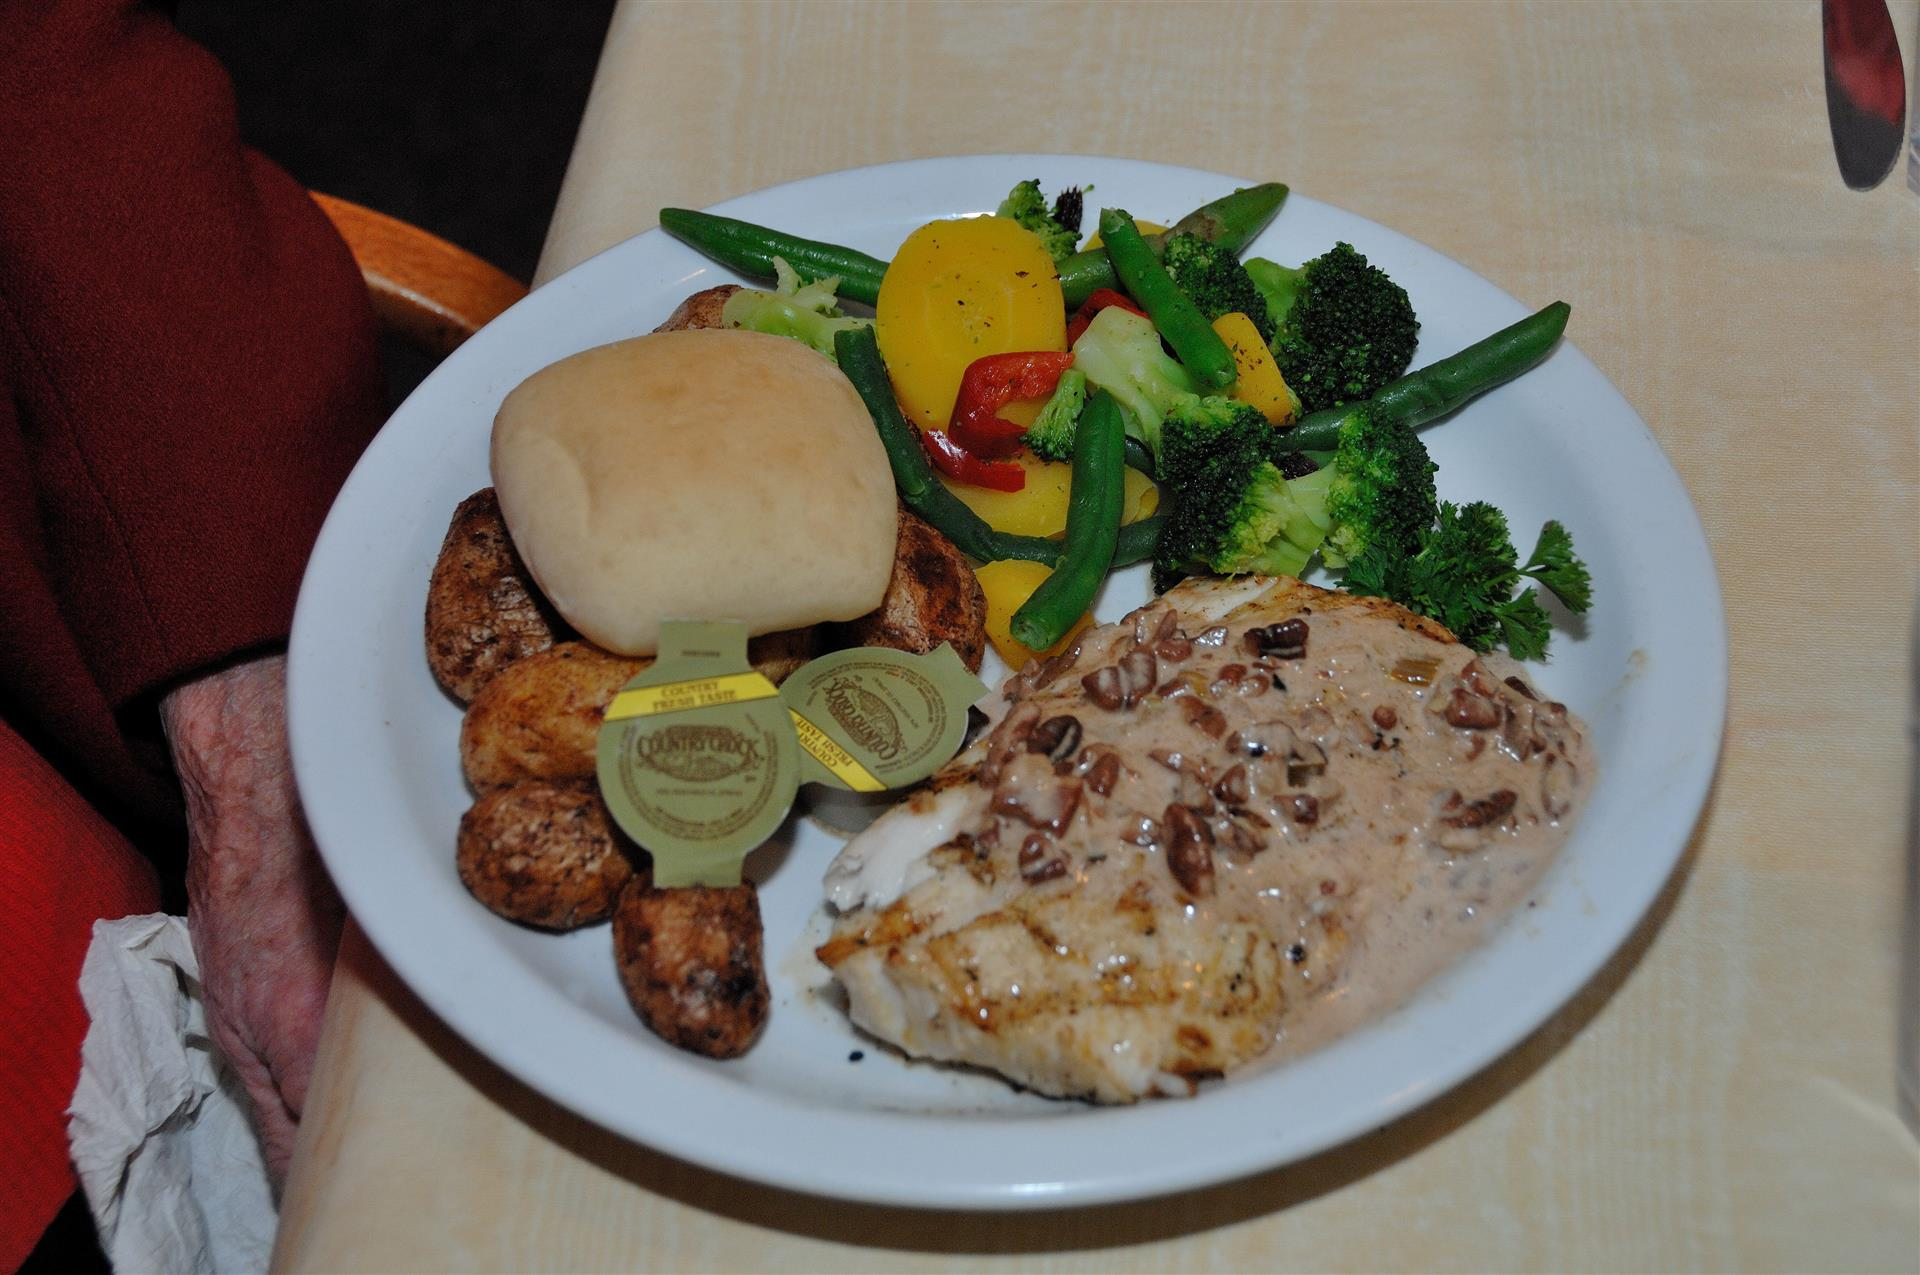 grilled salmon topped with sauce and nuts with a side of potatoes, veggies, and a biscuit with butter